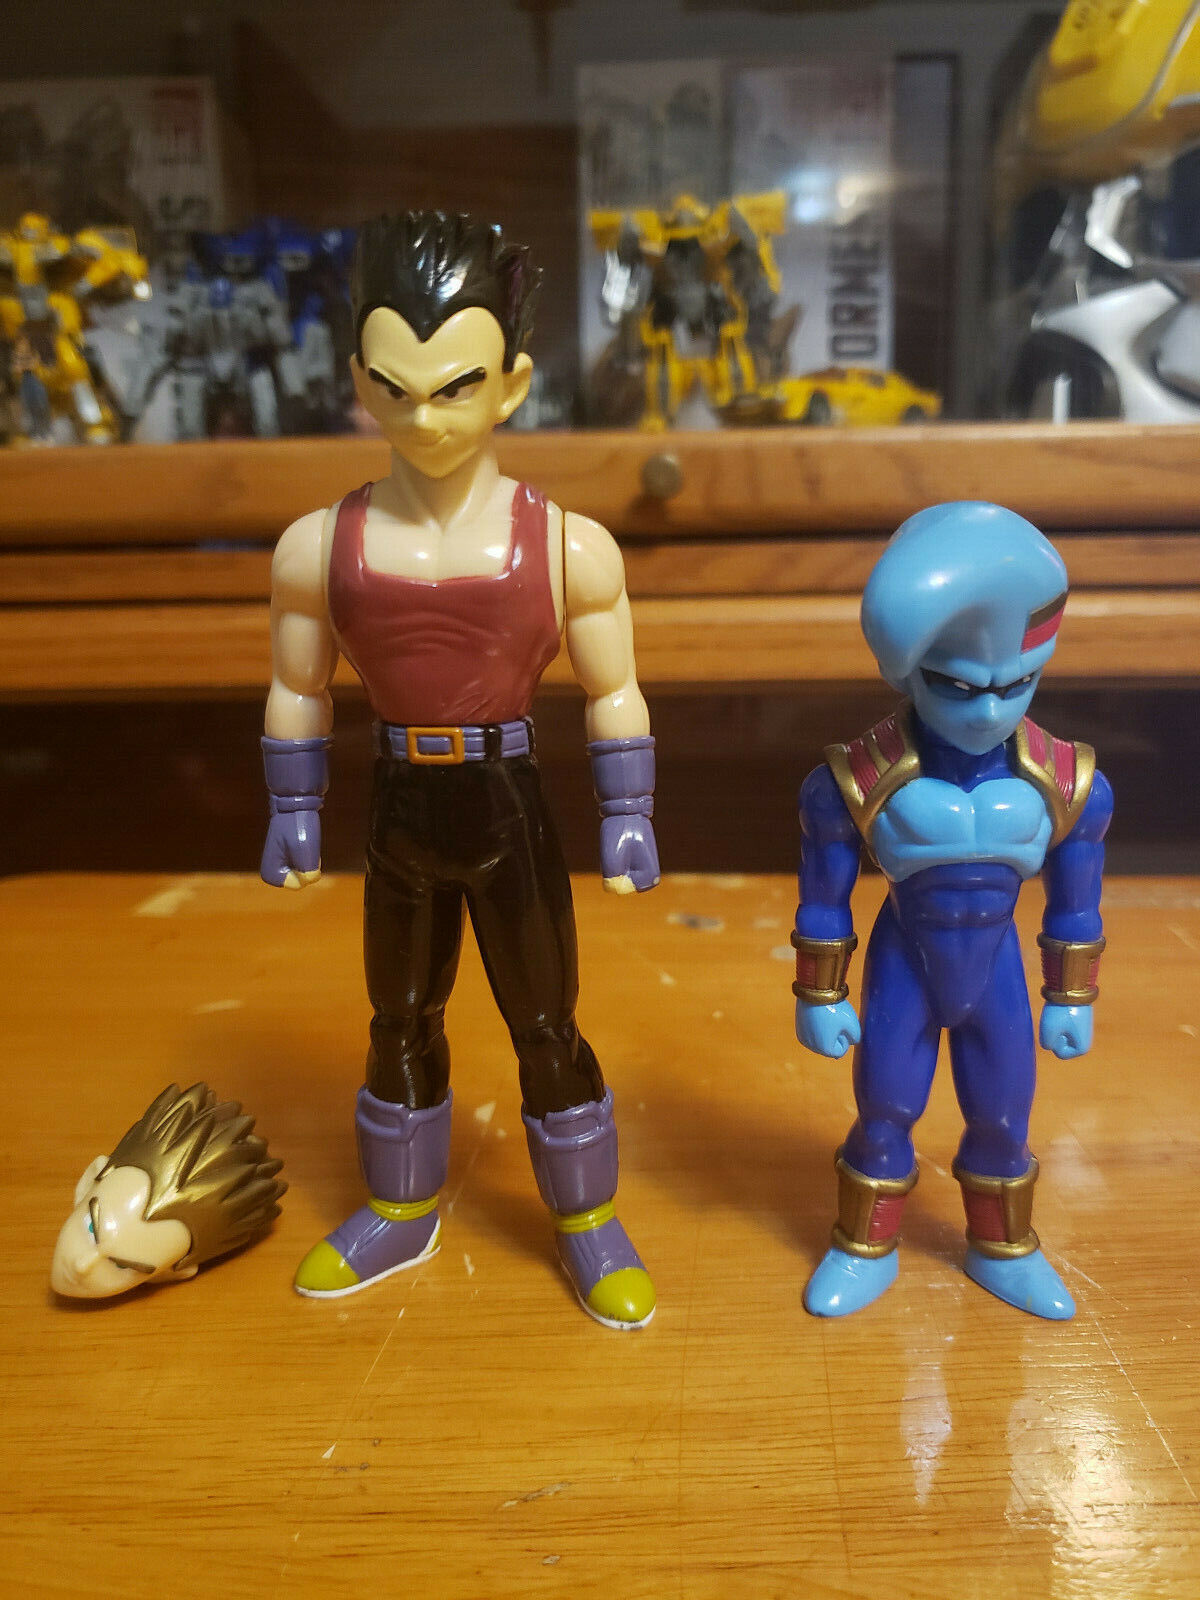 Character:GT Vegeta and Baby Vol 33:BANDAI Dragonball Z  and Dragon Ball GT super battle collection AB Toys & Irwin